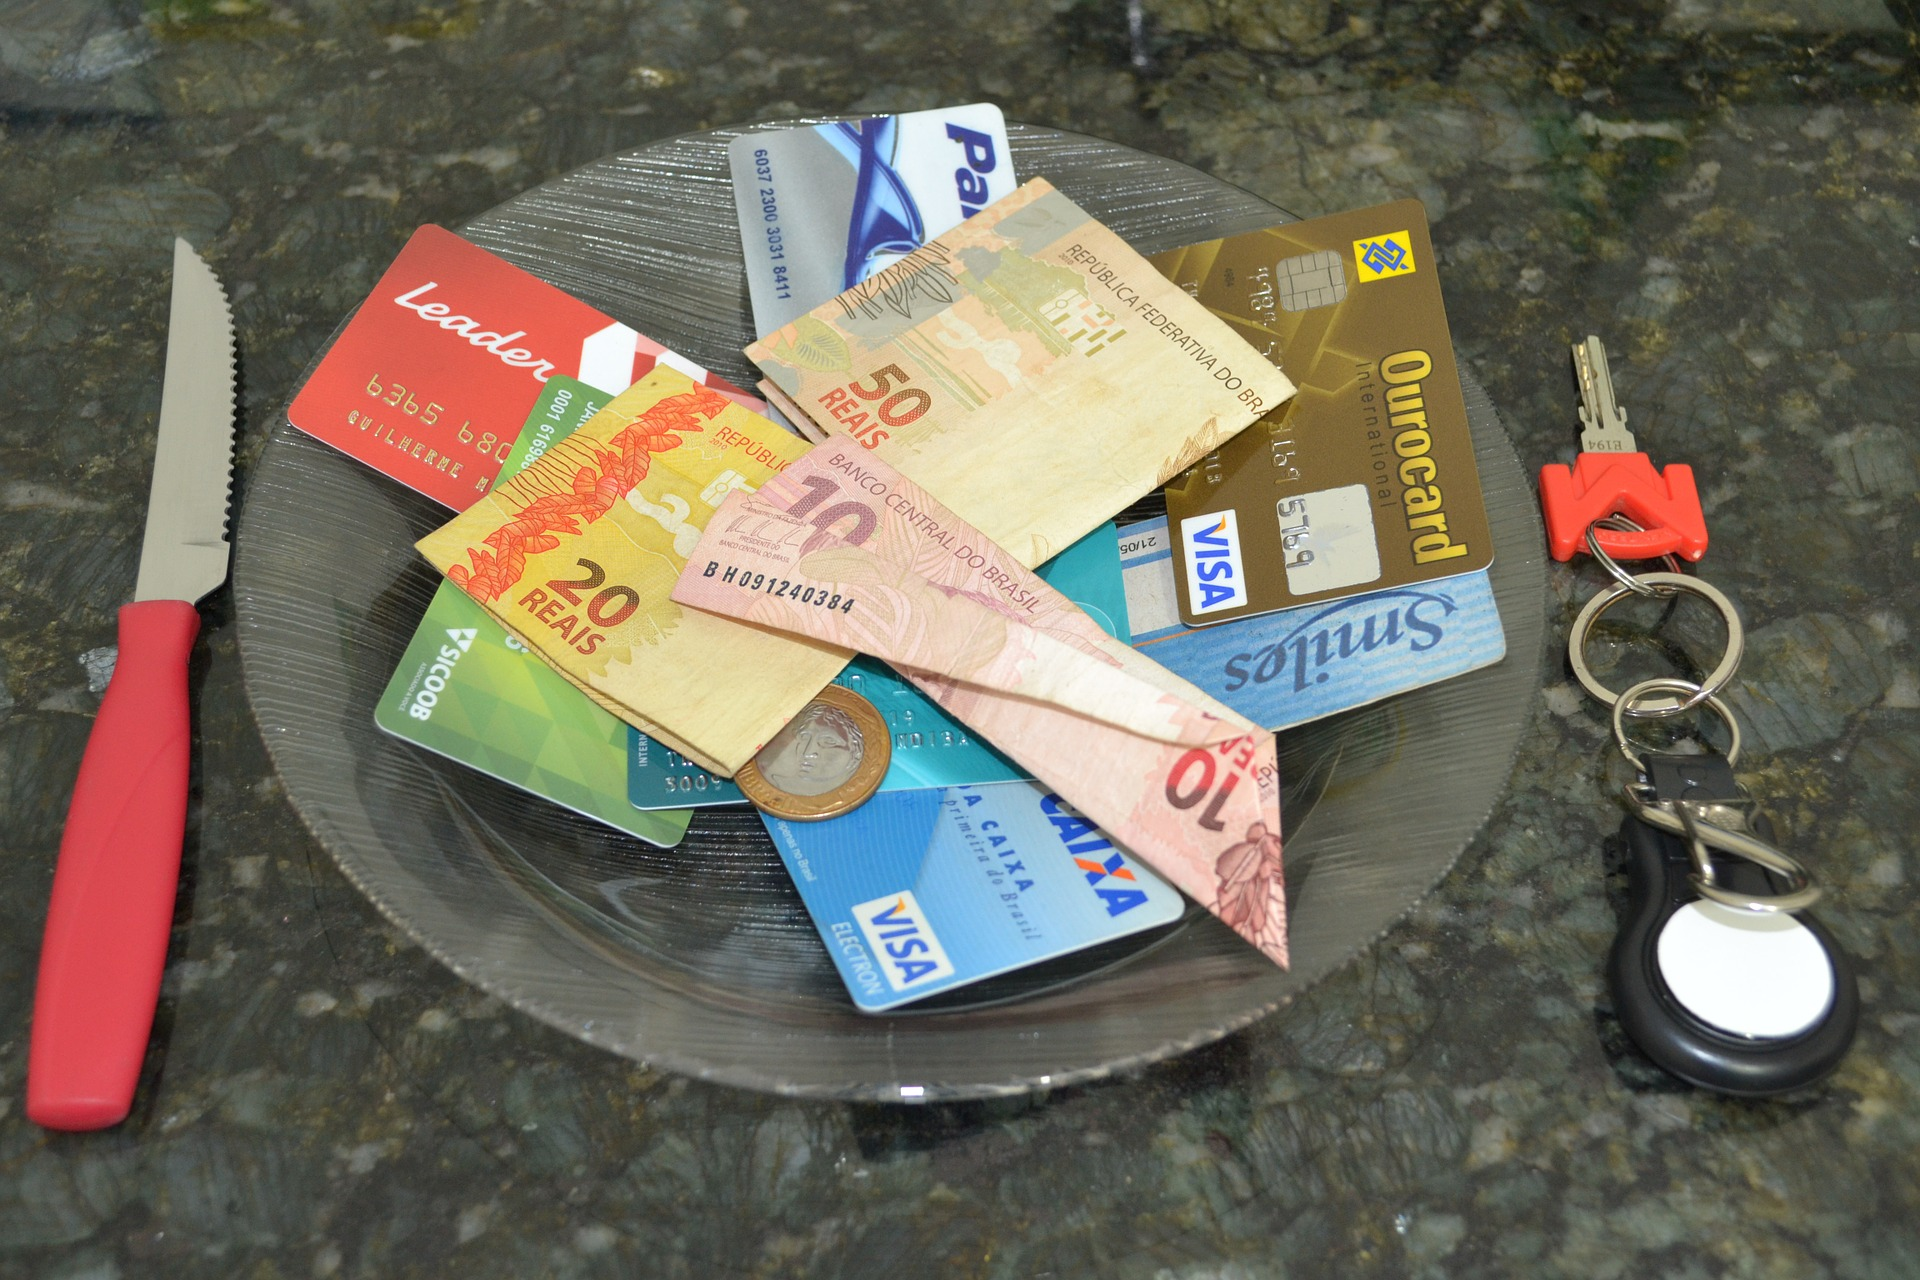 Do multi-currency prepaid cards make sense if you want to travel during your gap year?